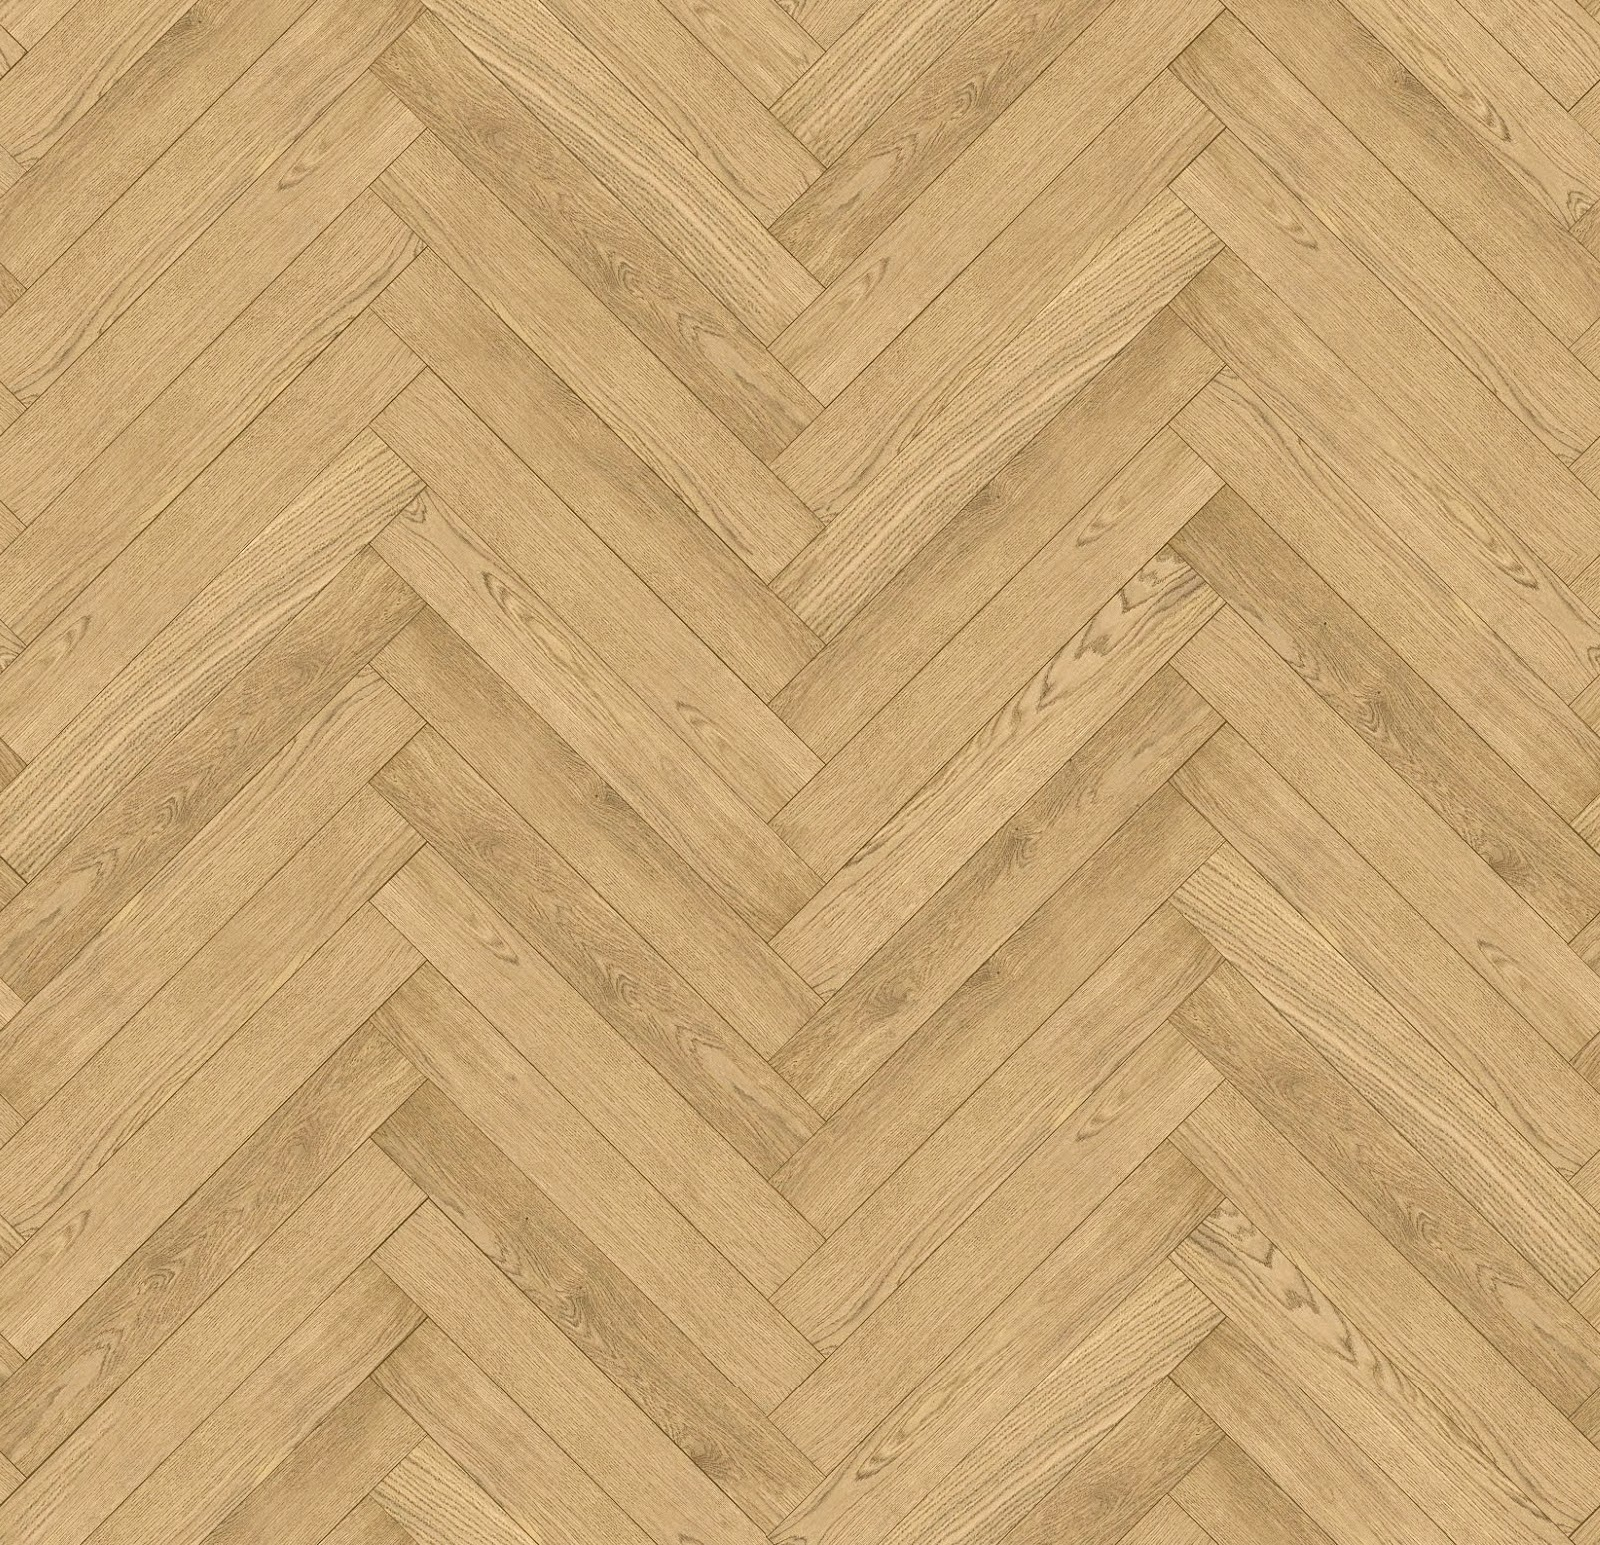 Seamless Wood Parquet Texture Maps Texturise Free Textures With Maps